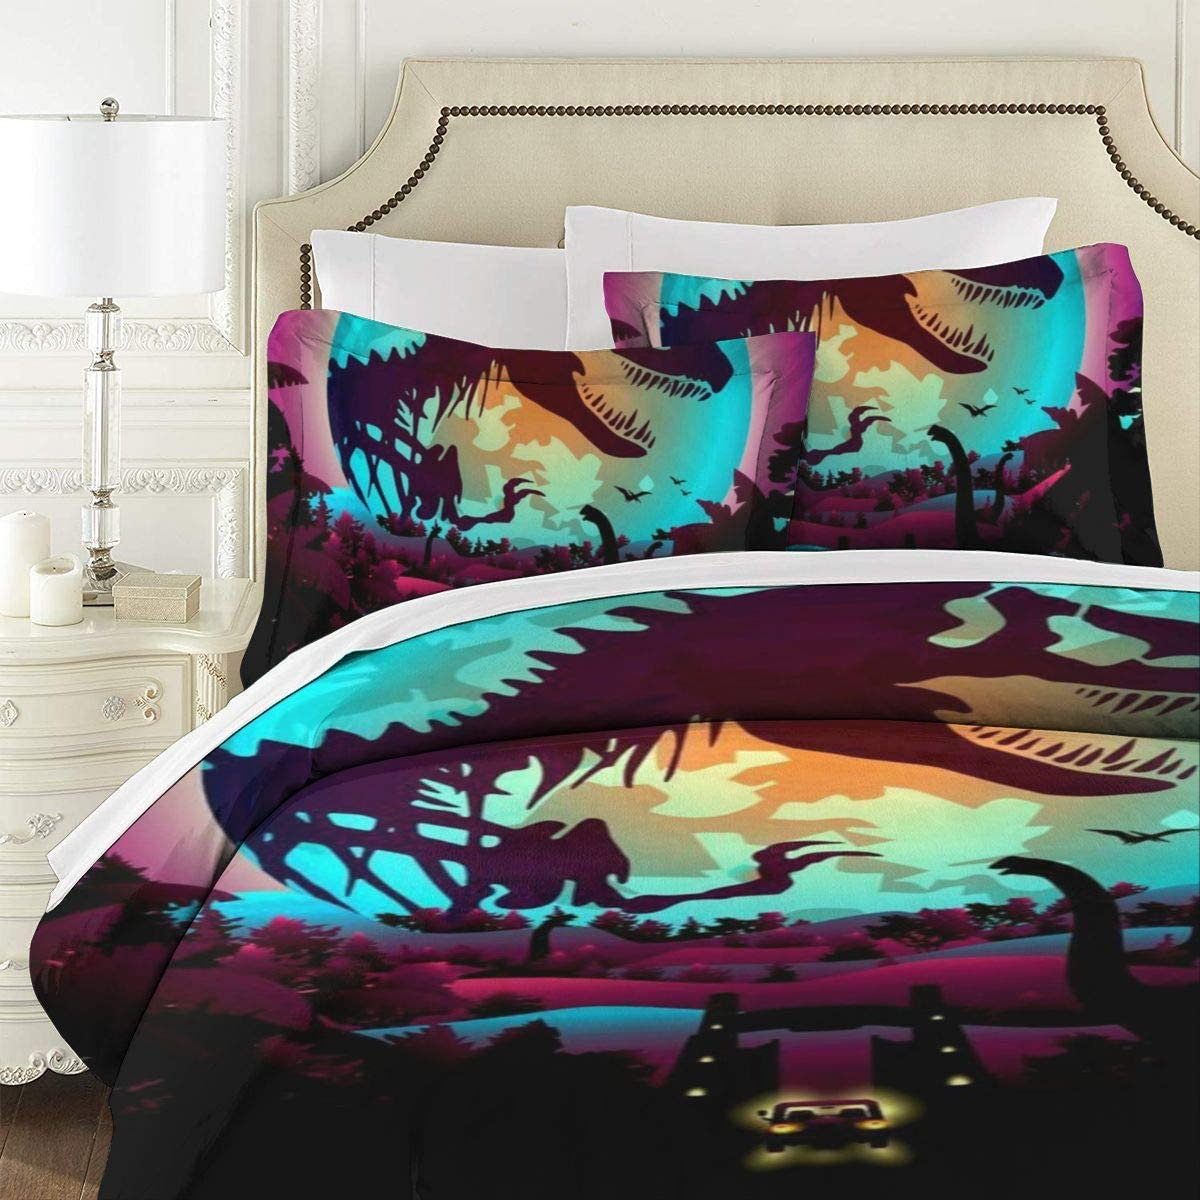 Private Bath Customiz Colorful Dinosaurs World 3D Quilt Reversible Bedding Sets Comforter Bedspread Set Queen Size 3 Piece Duvet Cover Set with 2 Pillow Cases for Men Women Kids 86 X 70 Inches